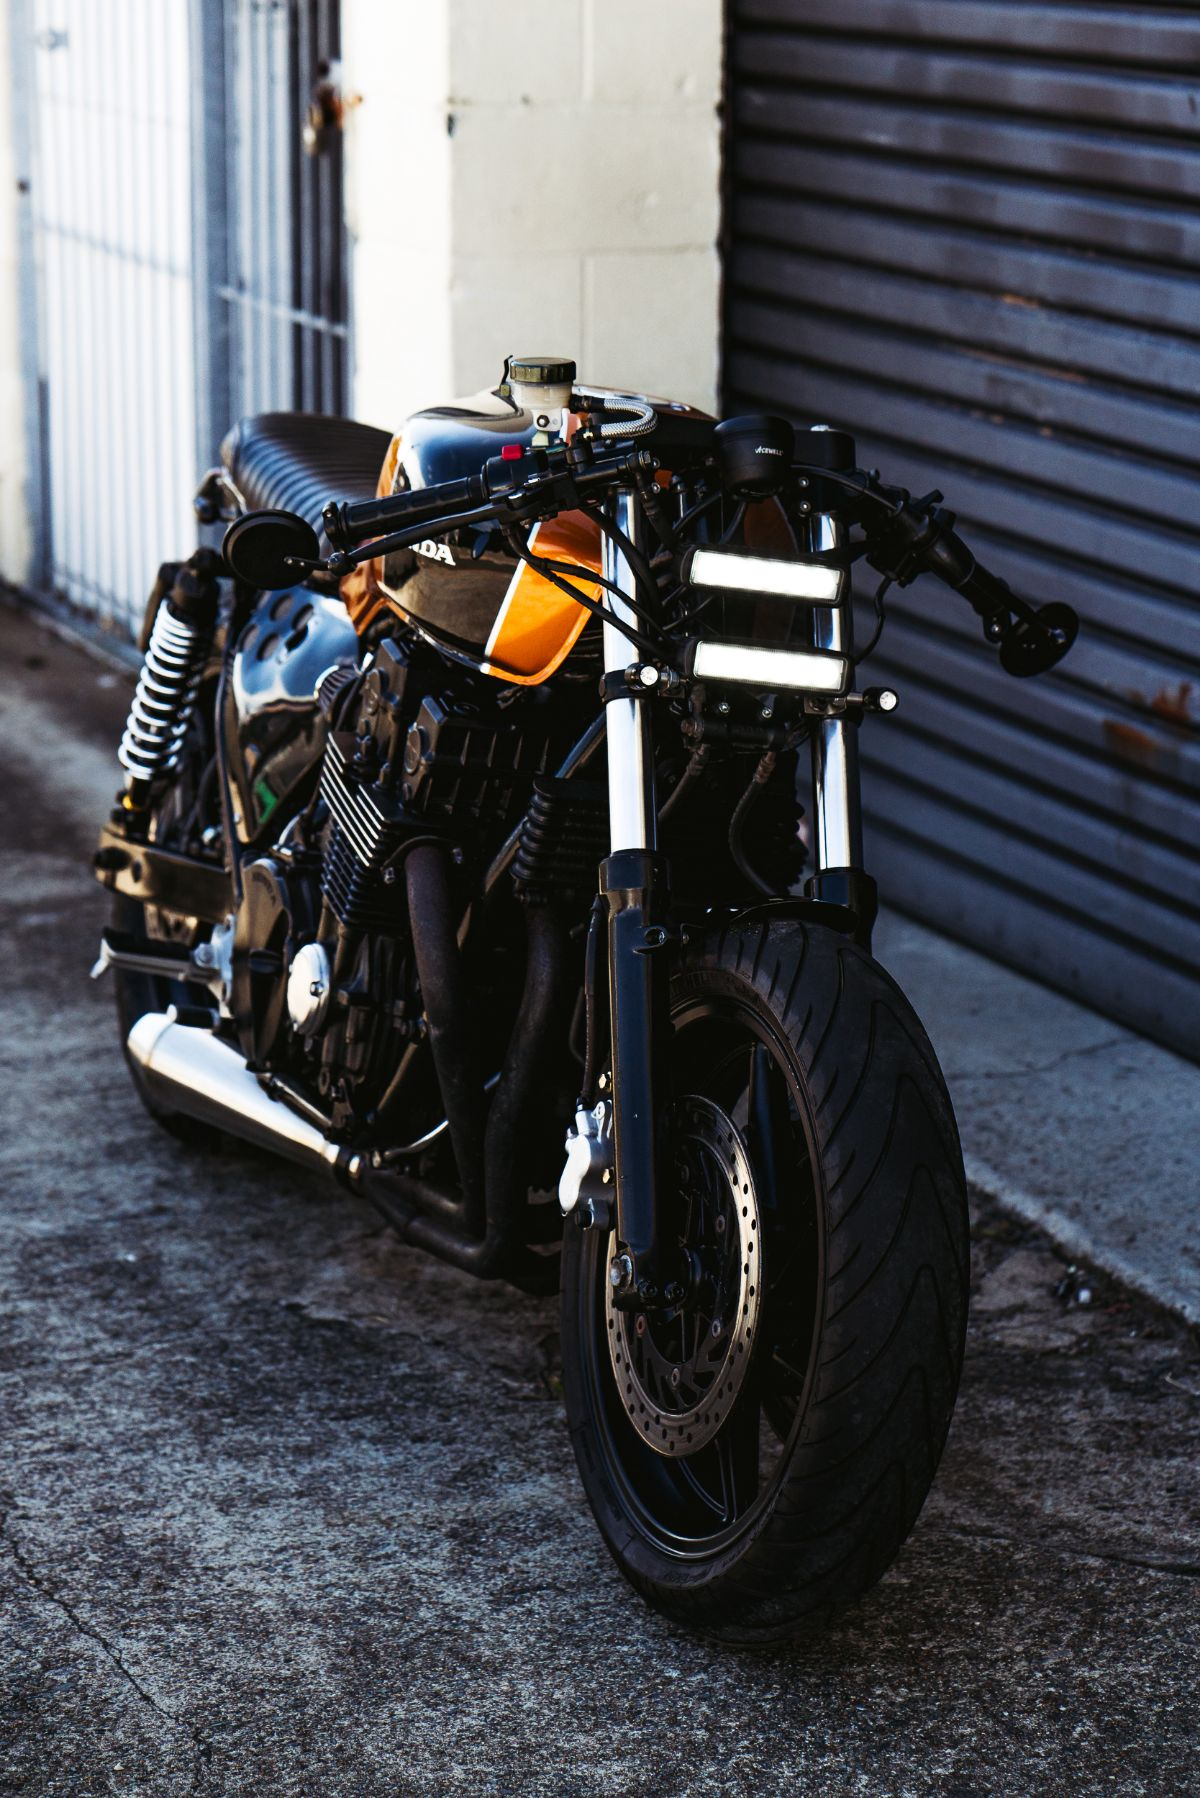 CB750 Cafe Brat Racer Street fighter custom parts and accessories